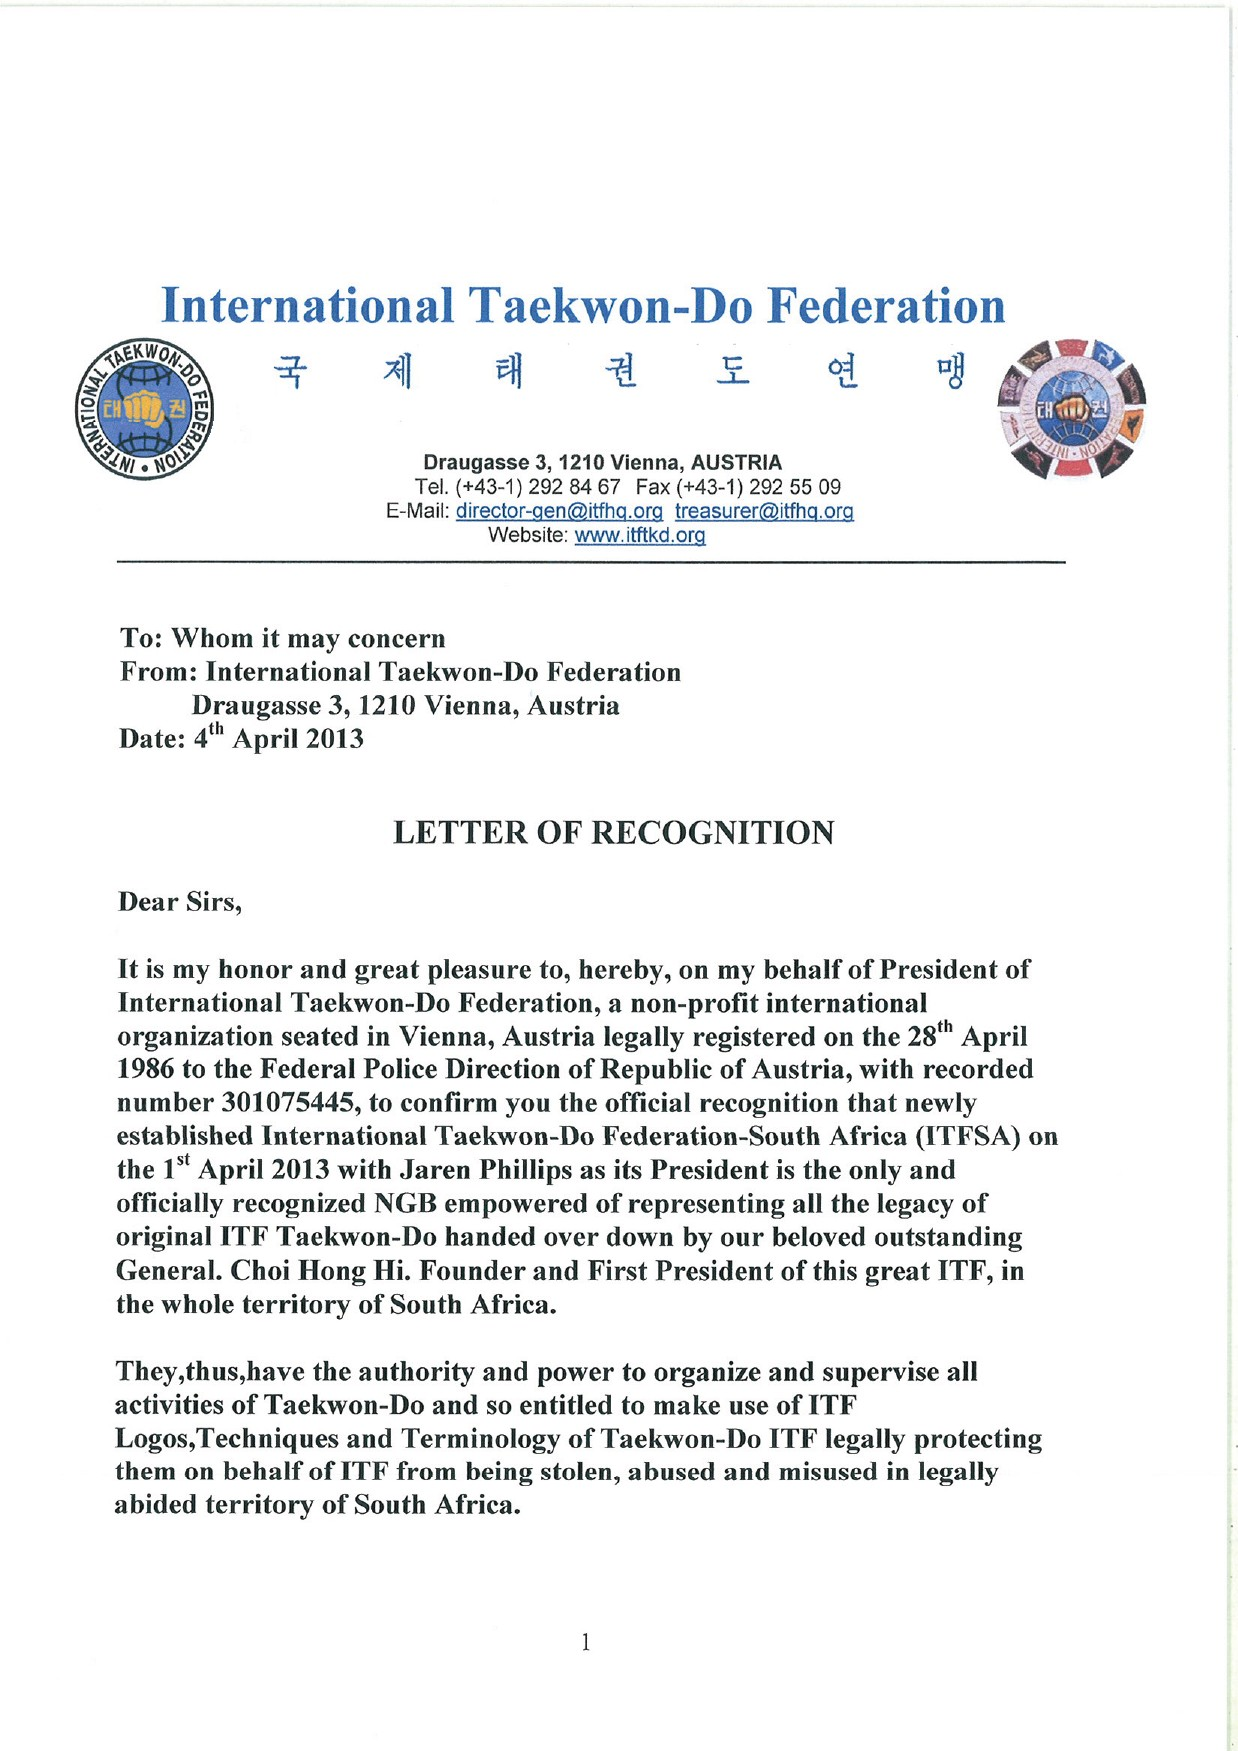 Letter Of Recognition - Page 1